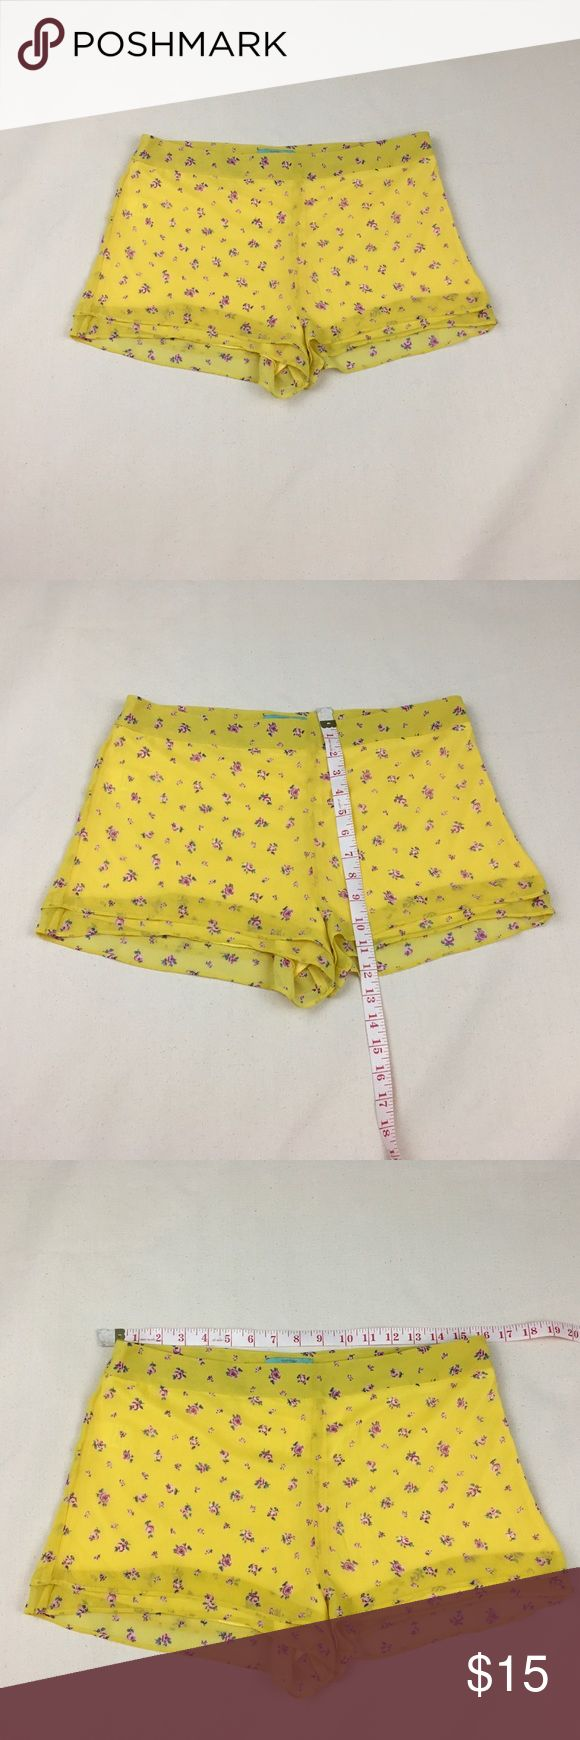 Sugar mint VTG women lined shorts L side zipper Sugar mint VTG women lined shorts L side zipper and hook-eye. Light weight yellow with cutie flowers. So sexy gorgeous look n yet comfortable. Smoke pet free. No tear rip holes stains. Sugar Mint Shorts